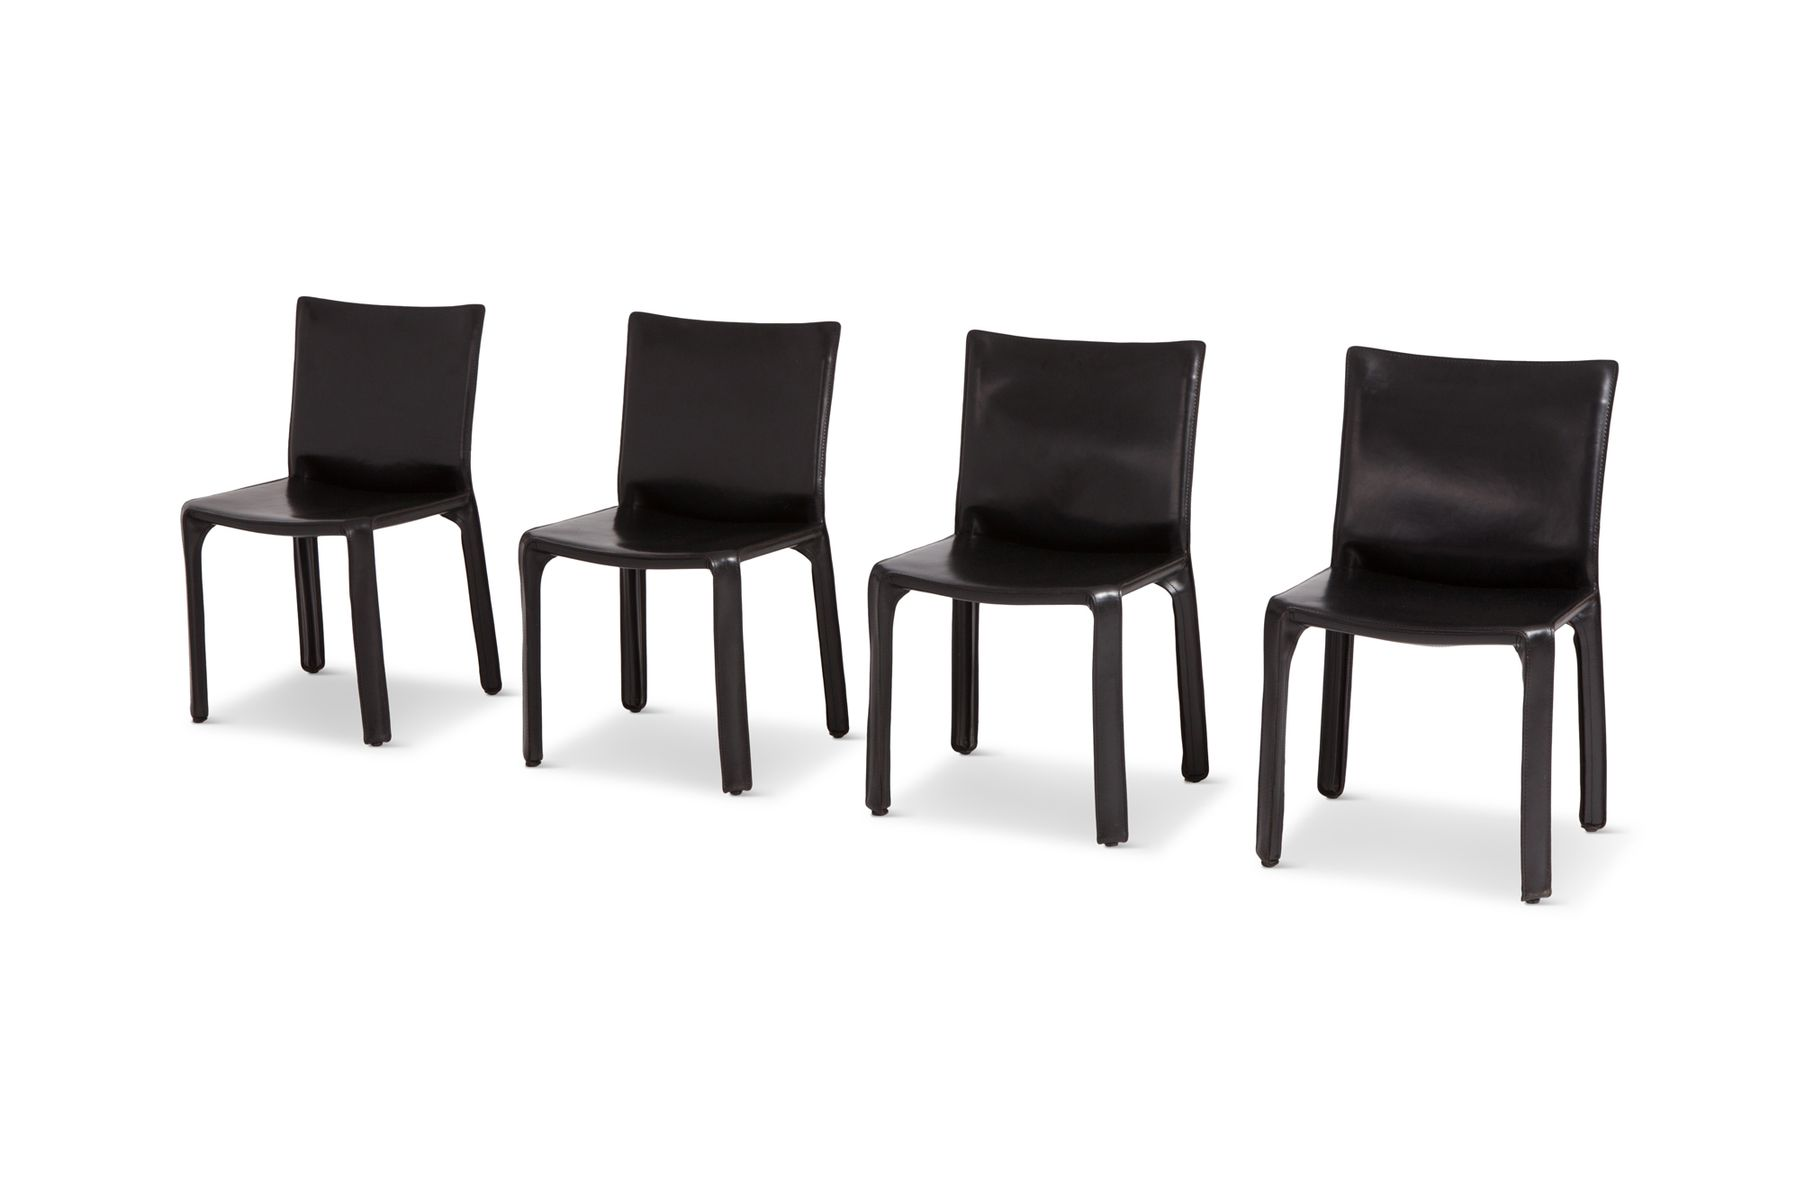 Outstanding Black Leather Cab Chairs By Mario Bellini For Cassina 1970S Set Of 4 Ocoug Best Dining Table And Chair Ideas Images Ocougorg